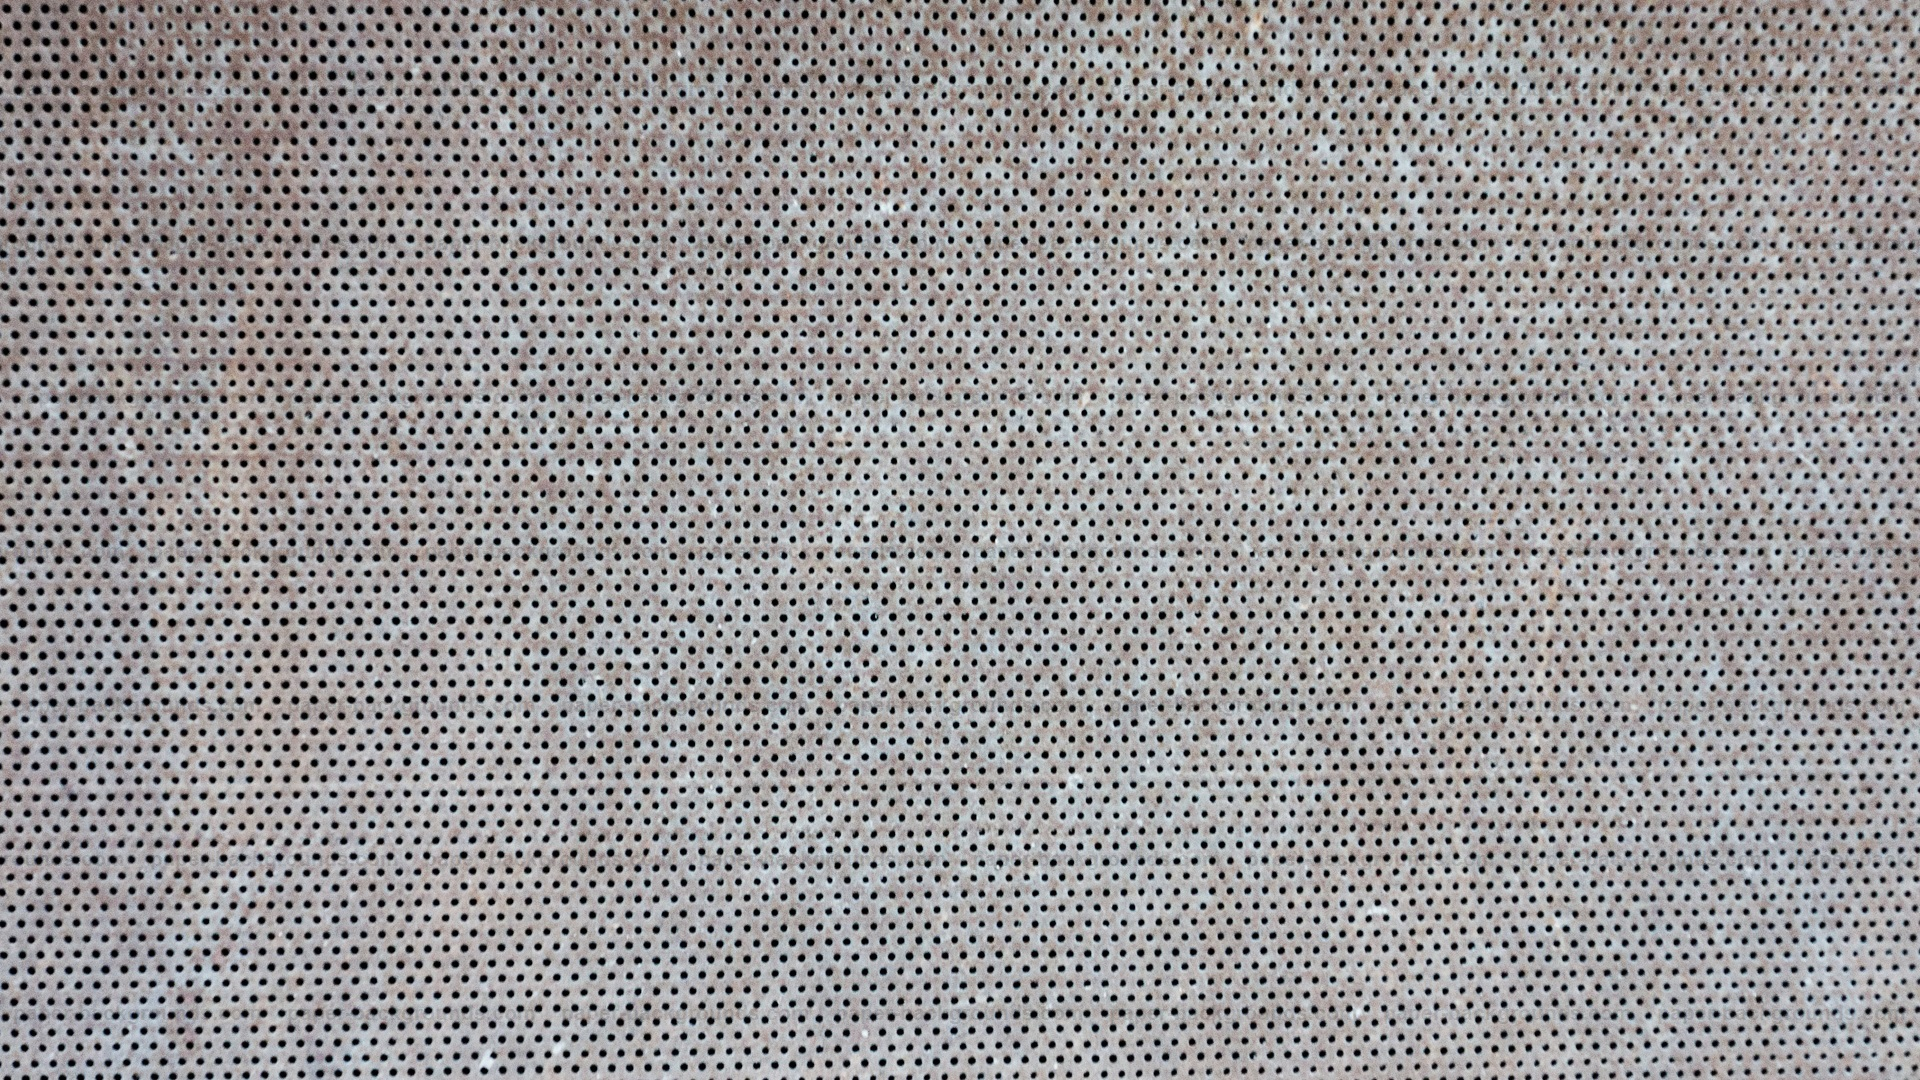 Rusty Metal Mesh Texture HD